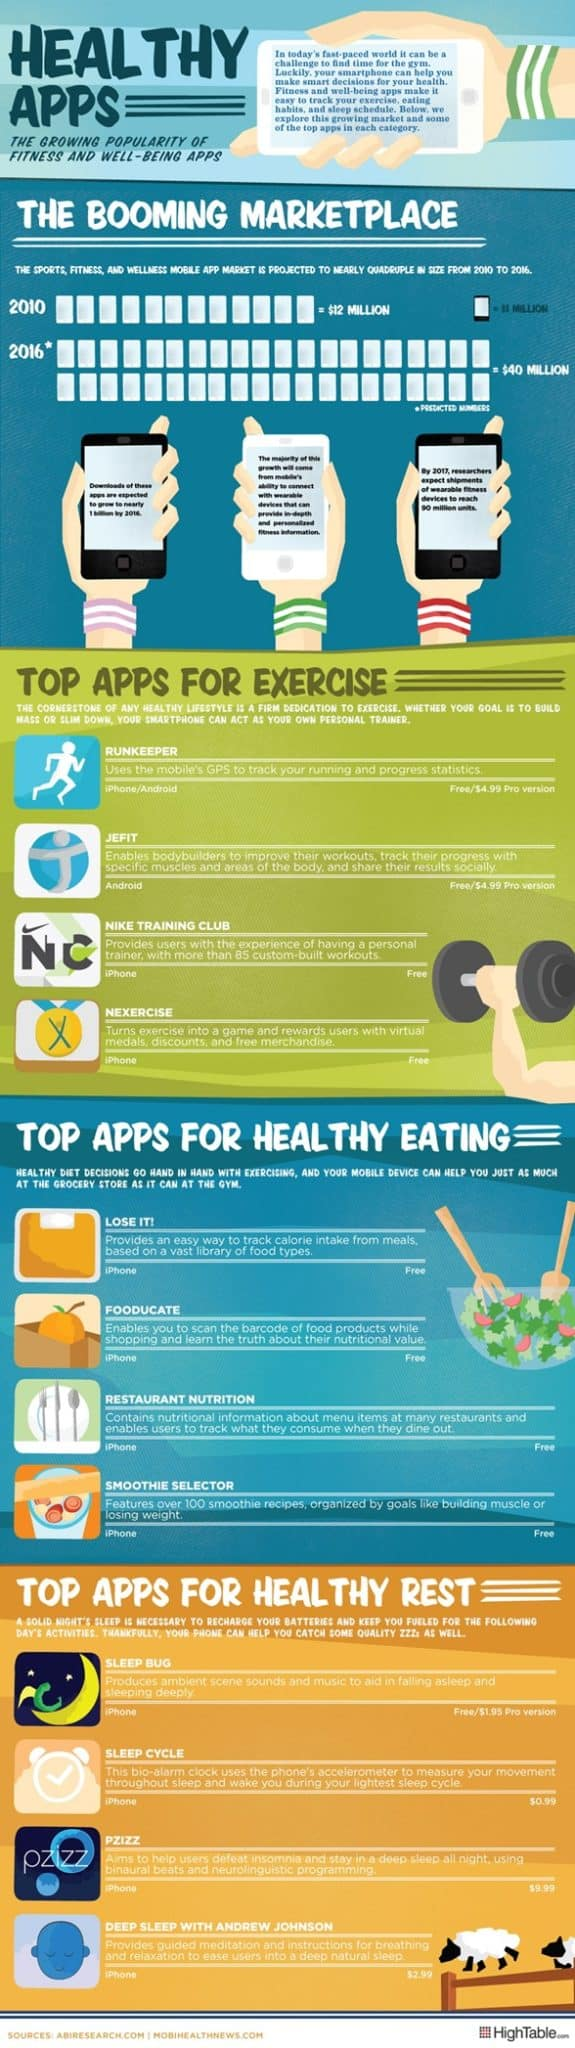 health-apps-972